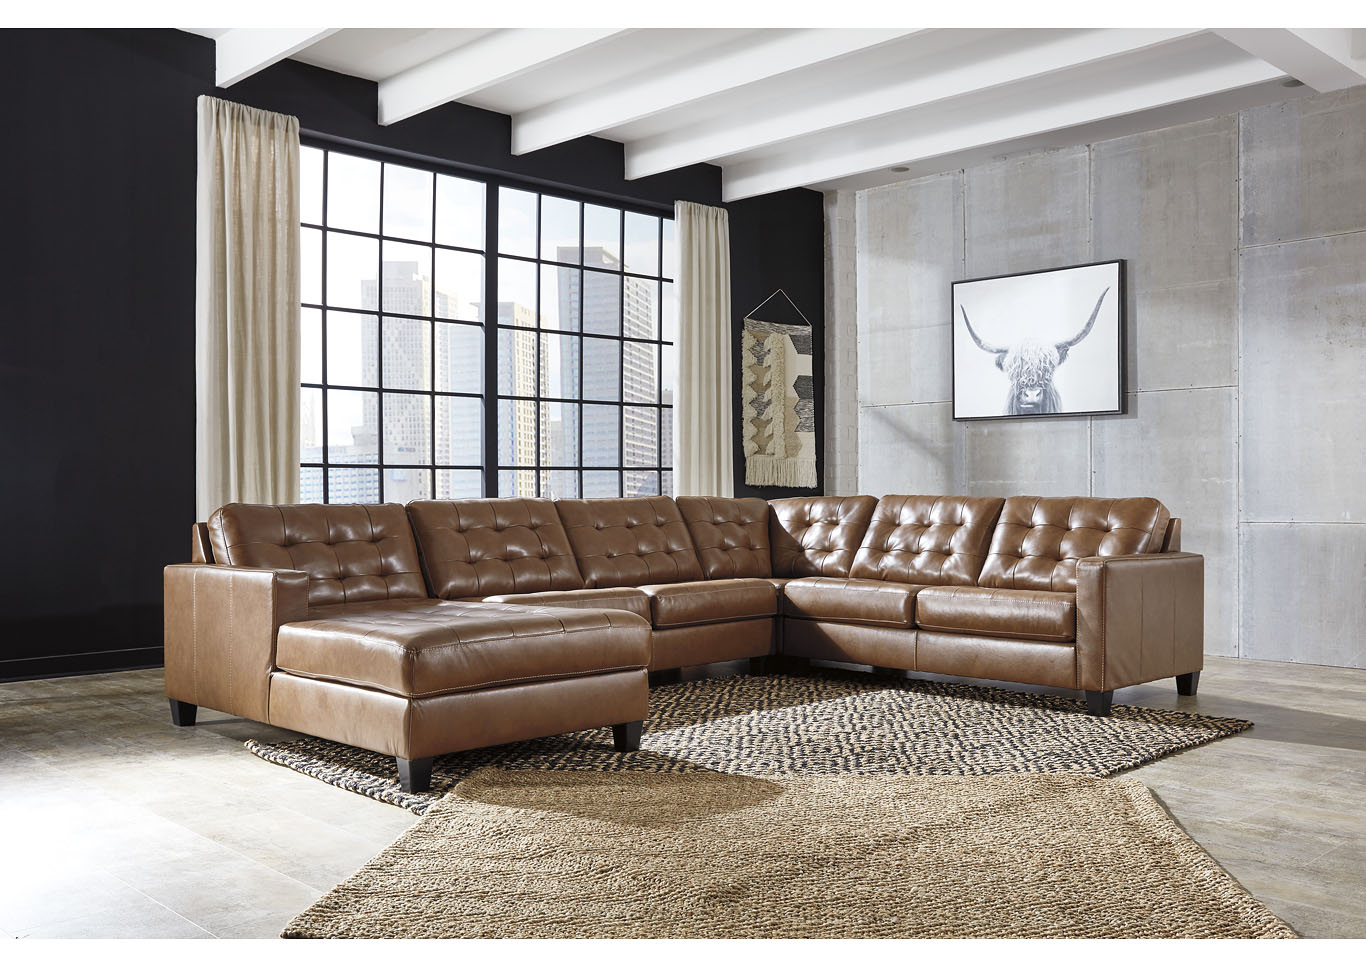 Baskove Auburn Right-Arm Facing Chaise Sectional,Signature Design By Ashley